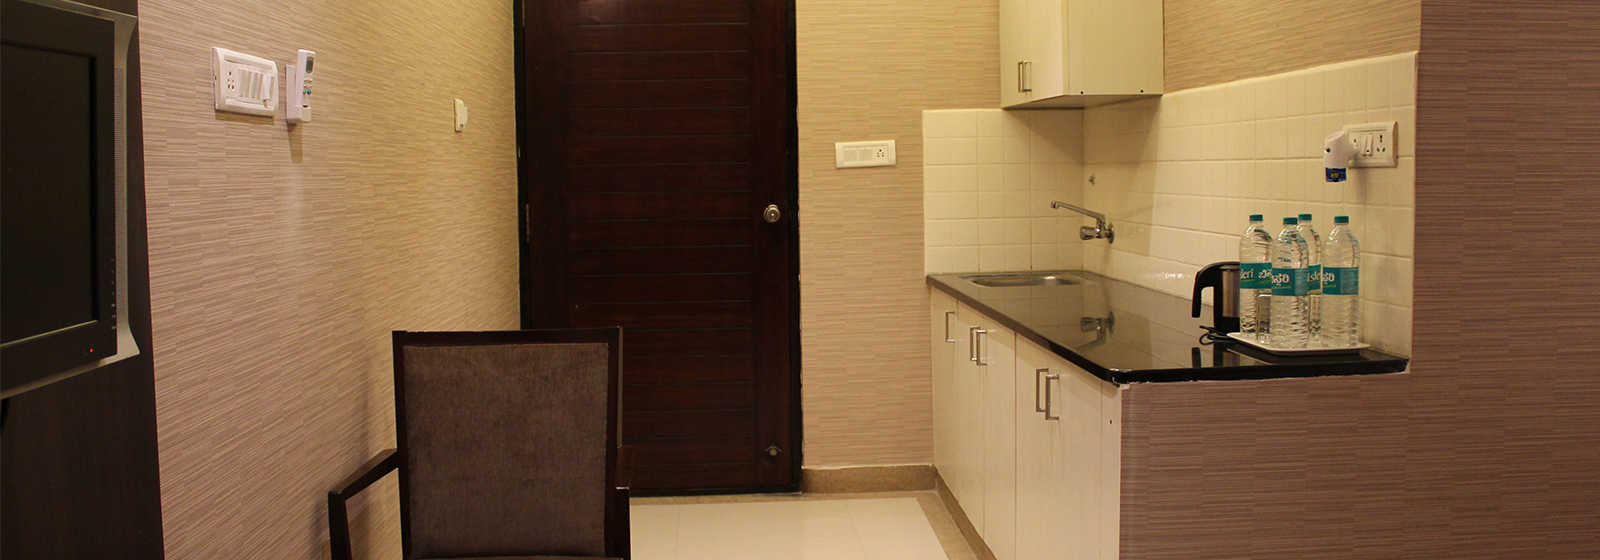 Super Deluxe room at The Byke Signature, a business hotel in Whitefield, Bangalore.